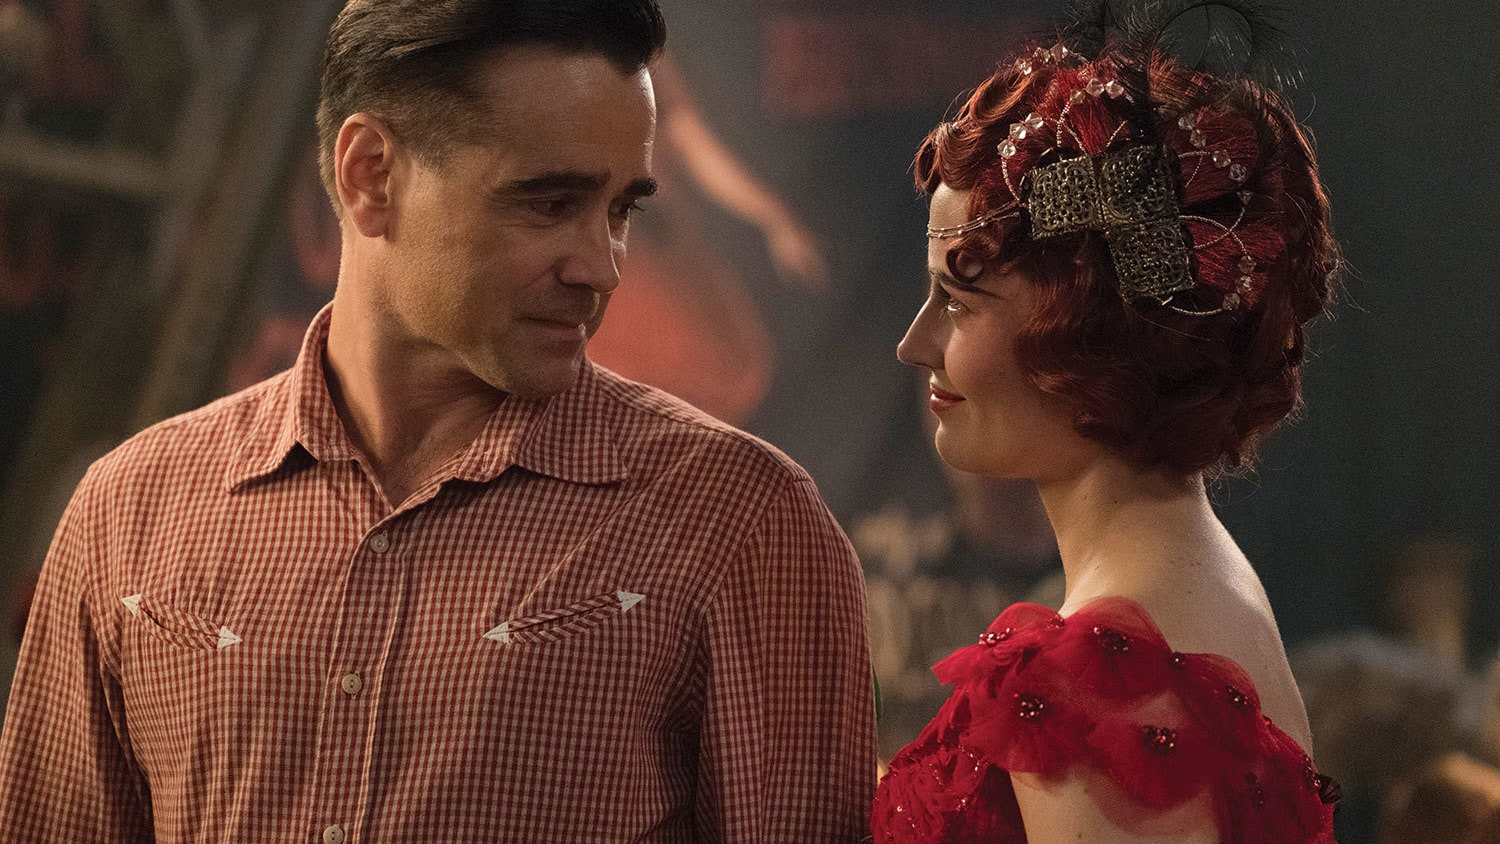 Colin Farrell and Eva Green in Dumbo